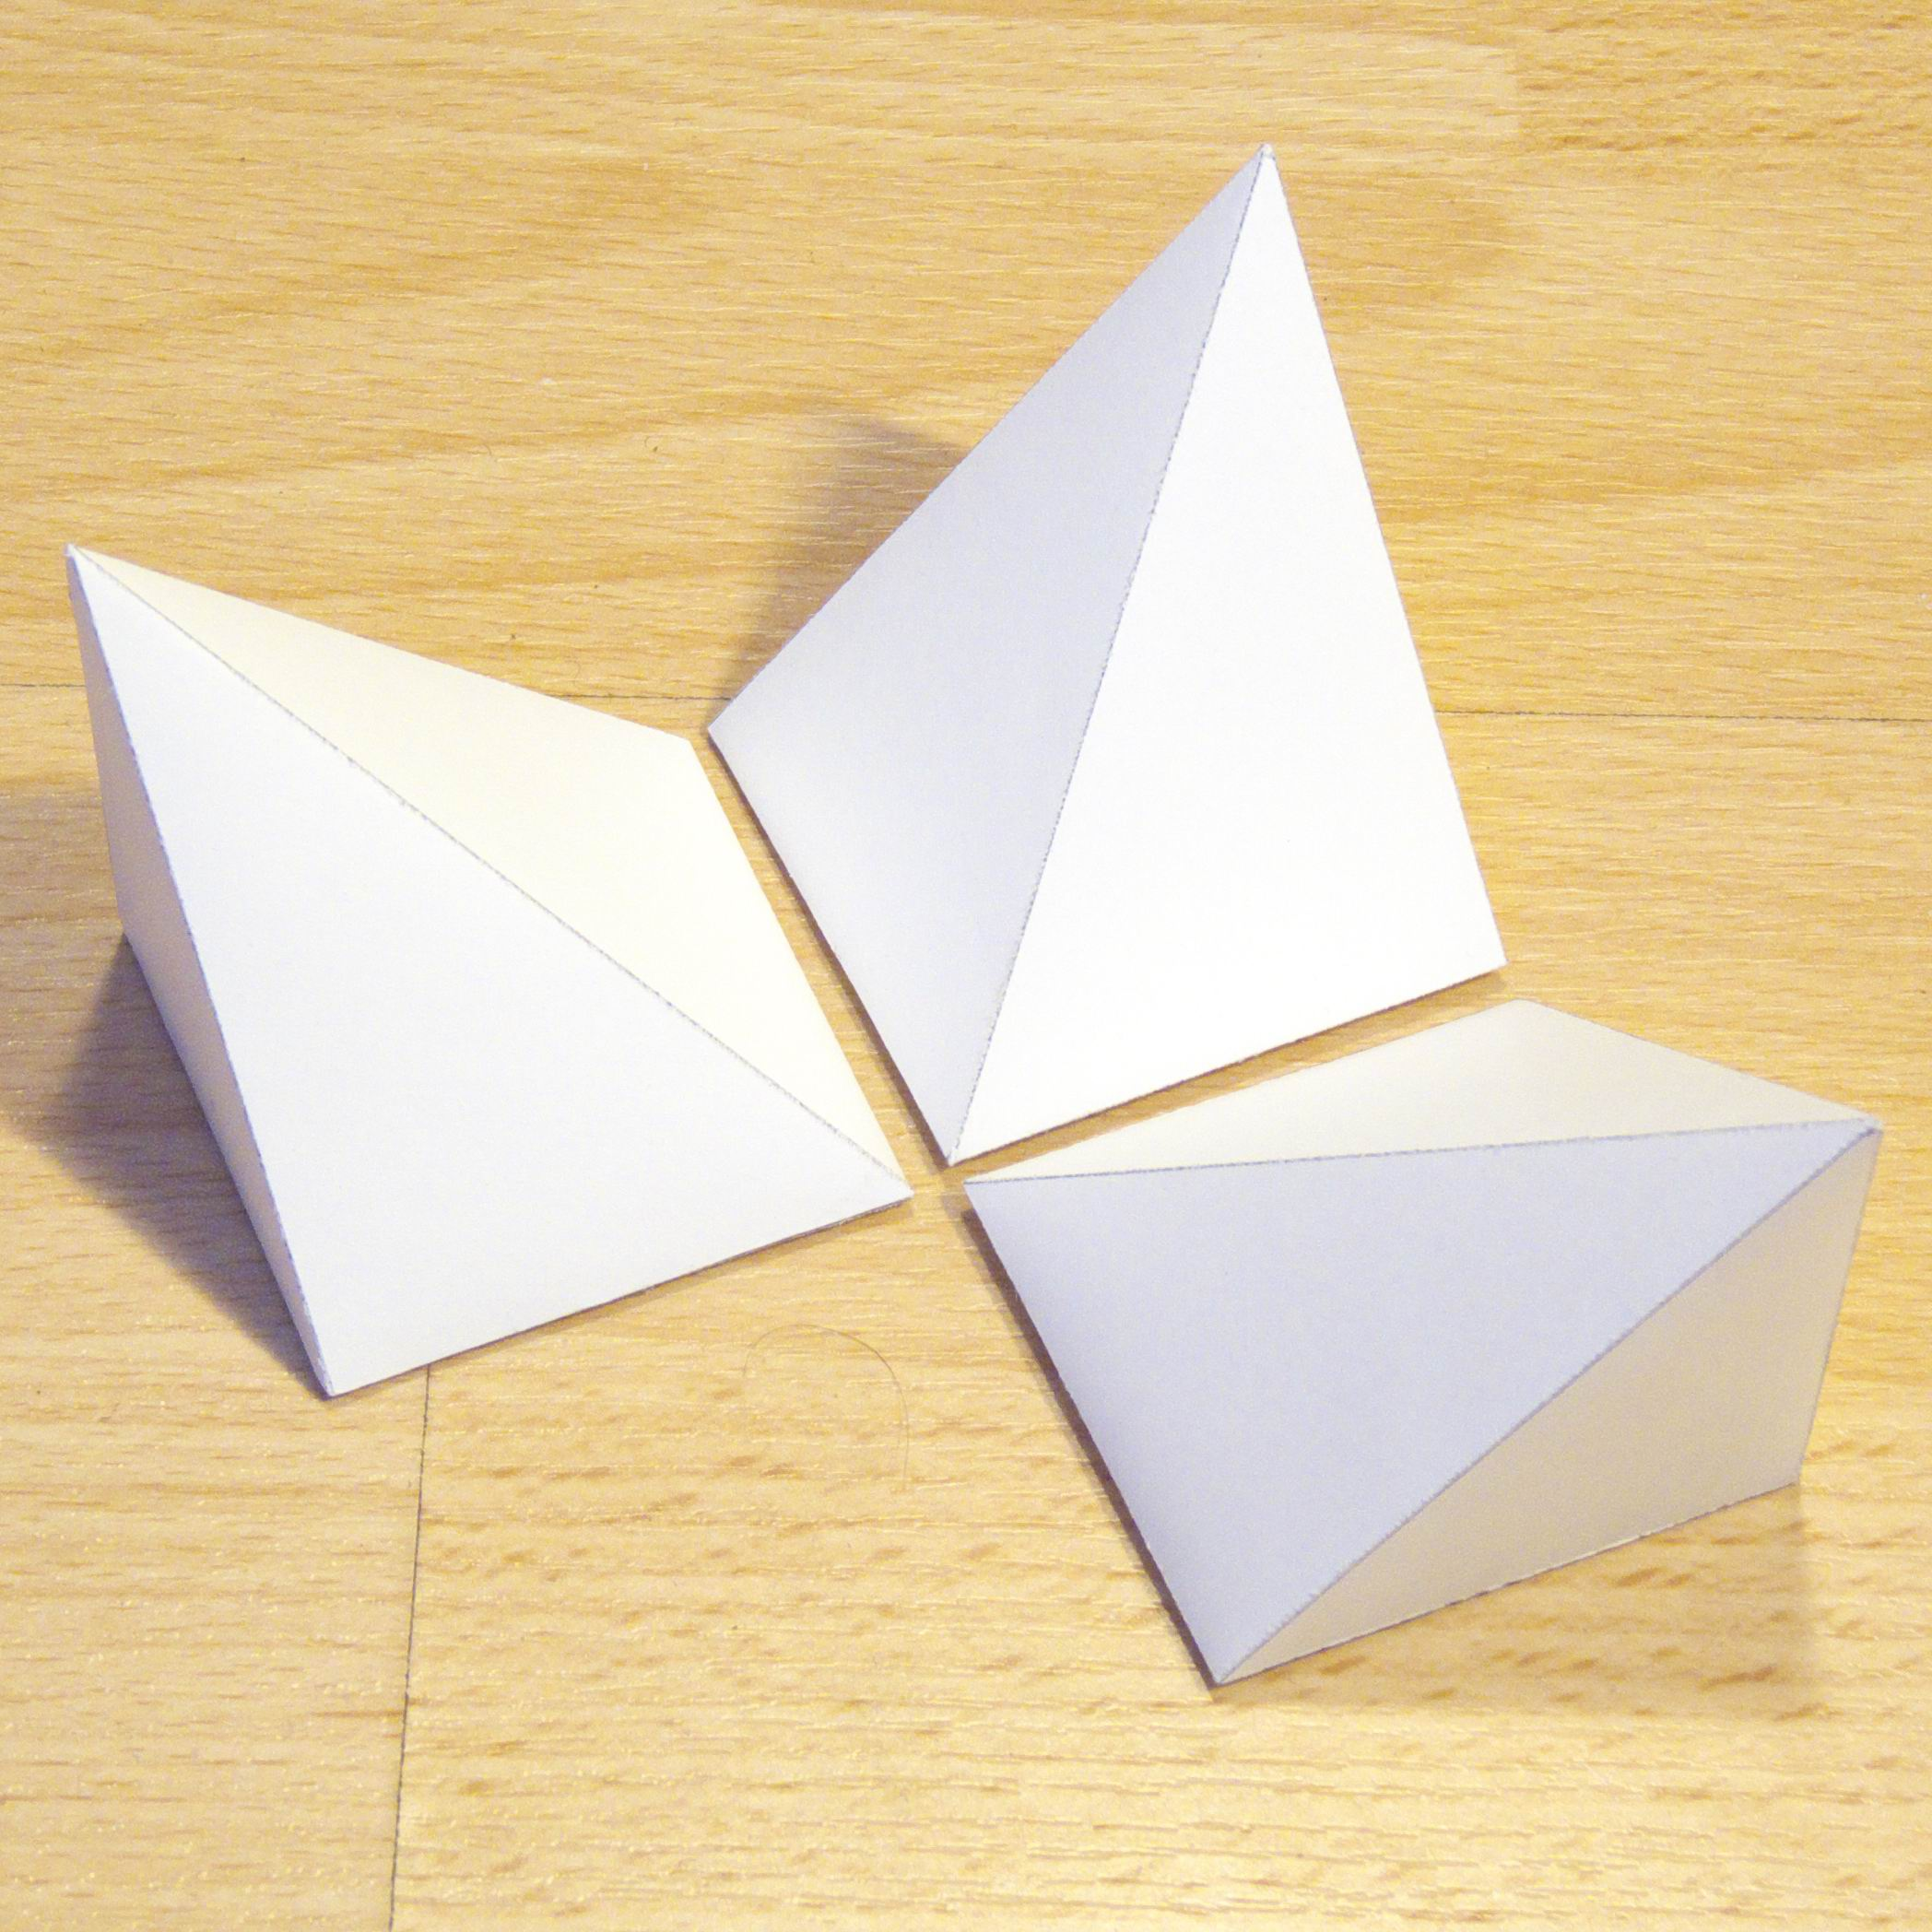 Paper Three Pyramids That Form A Cube